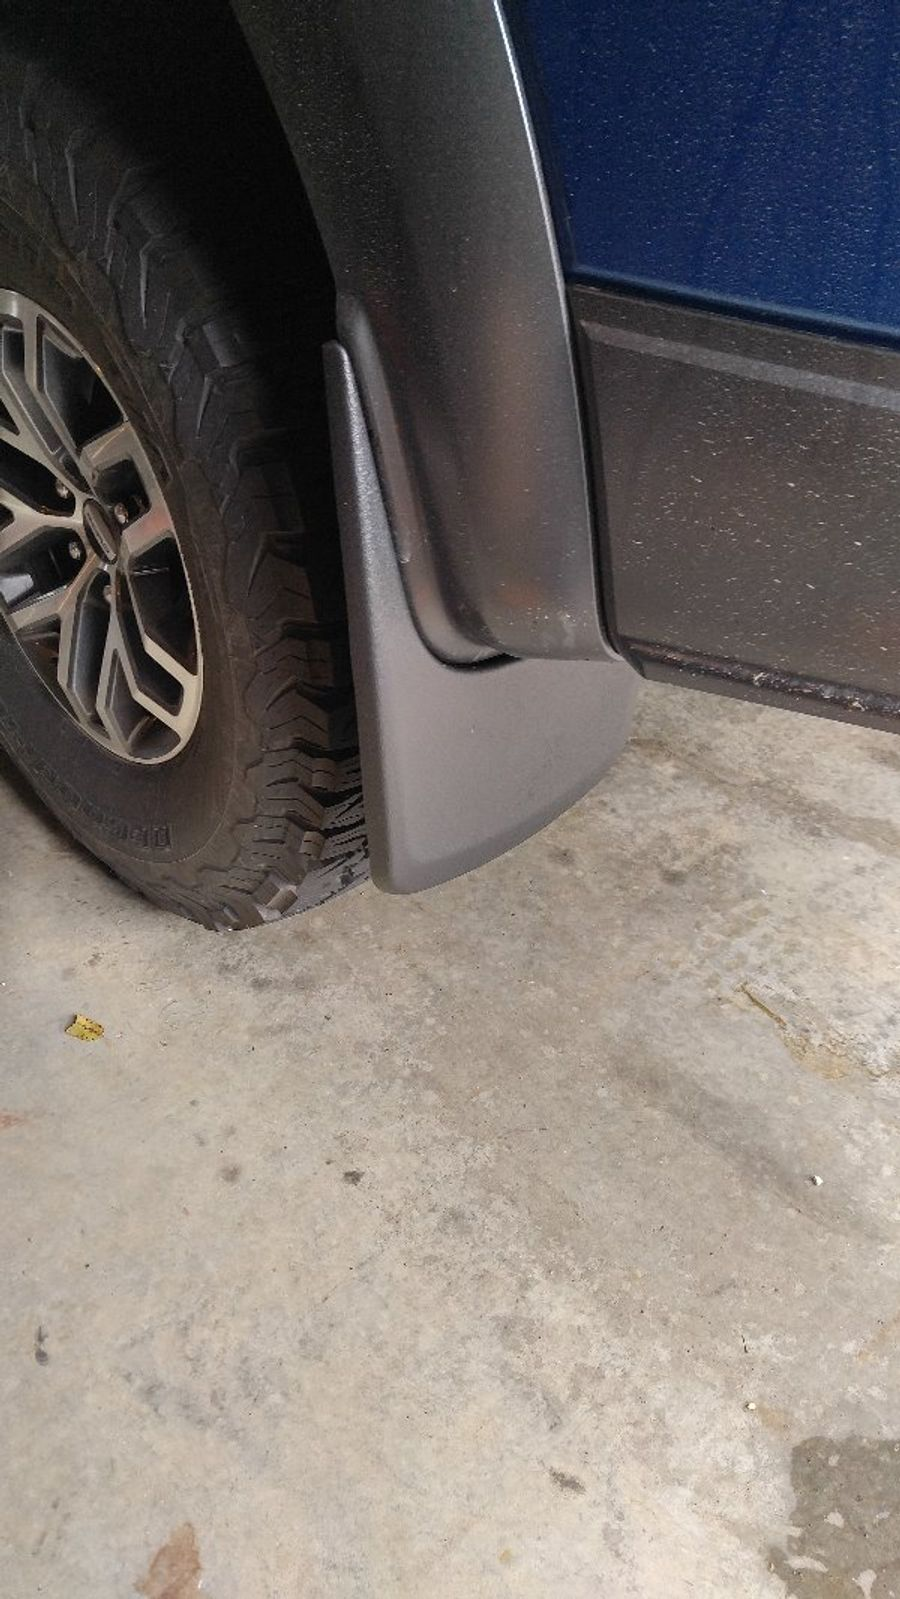 Husky Liners 58491 Mudflaps Installed On Jason Akers S Ford F 150 Raptor On Wheelwell